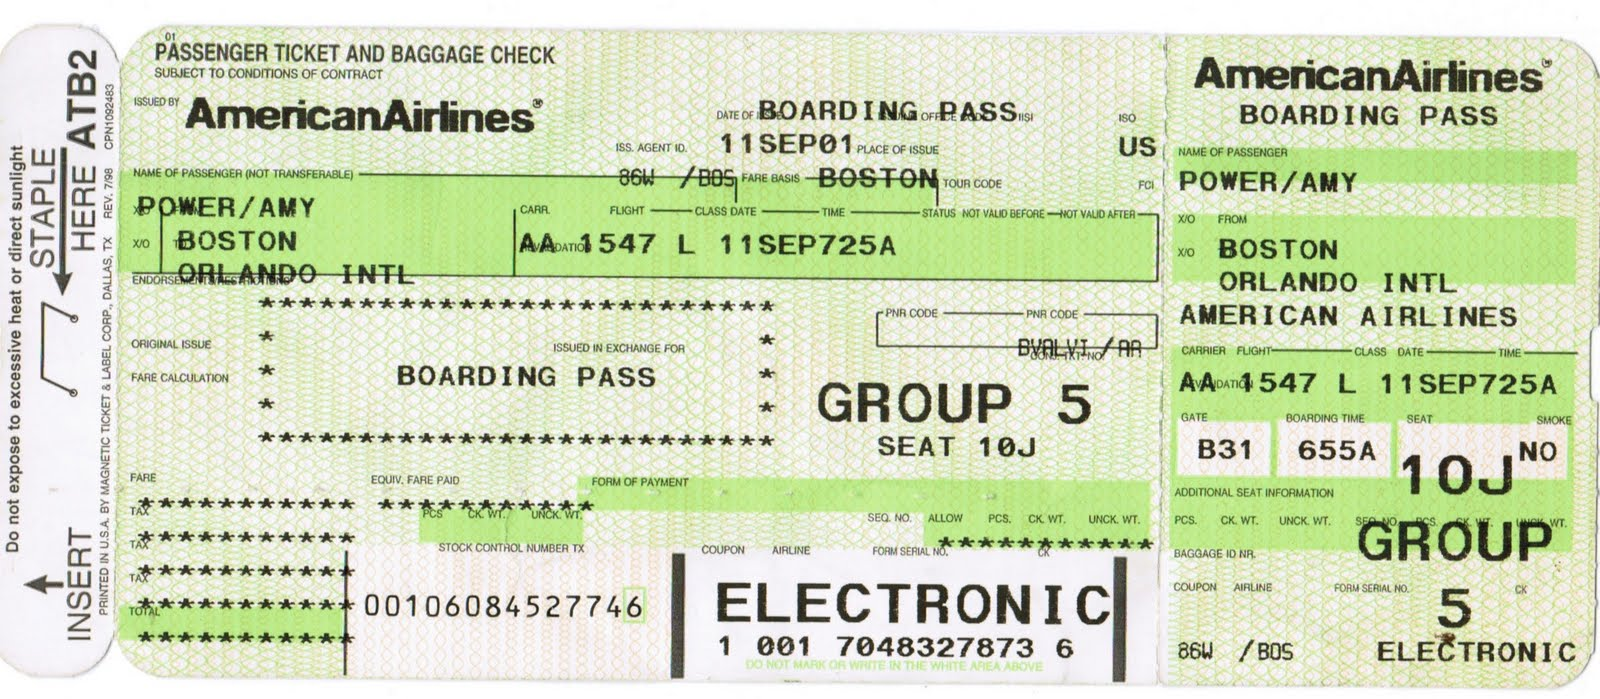 how to send american airlines boarding pass to passbook